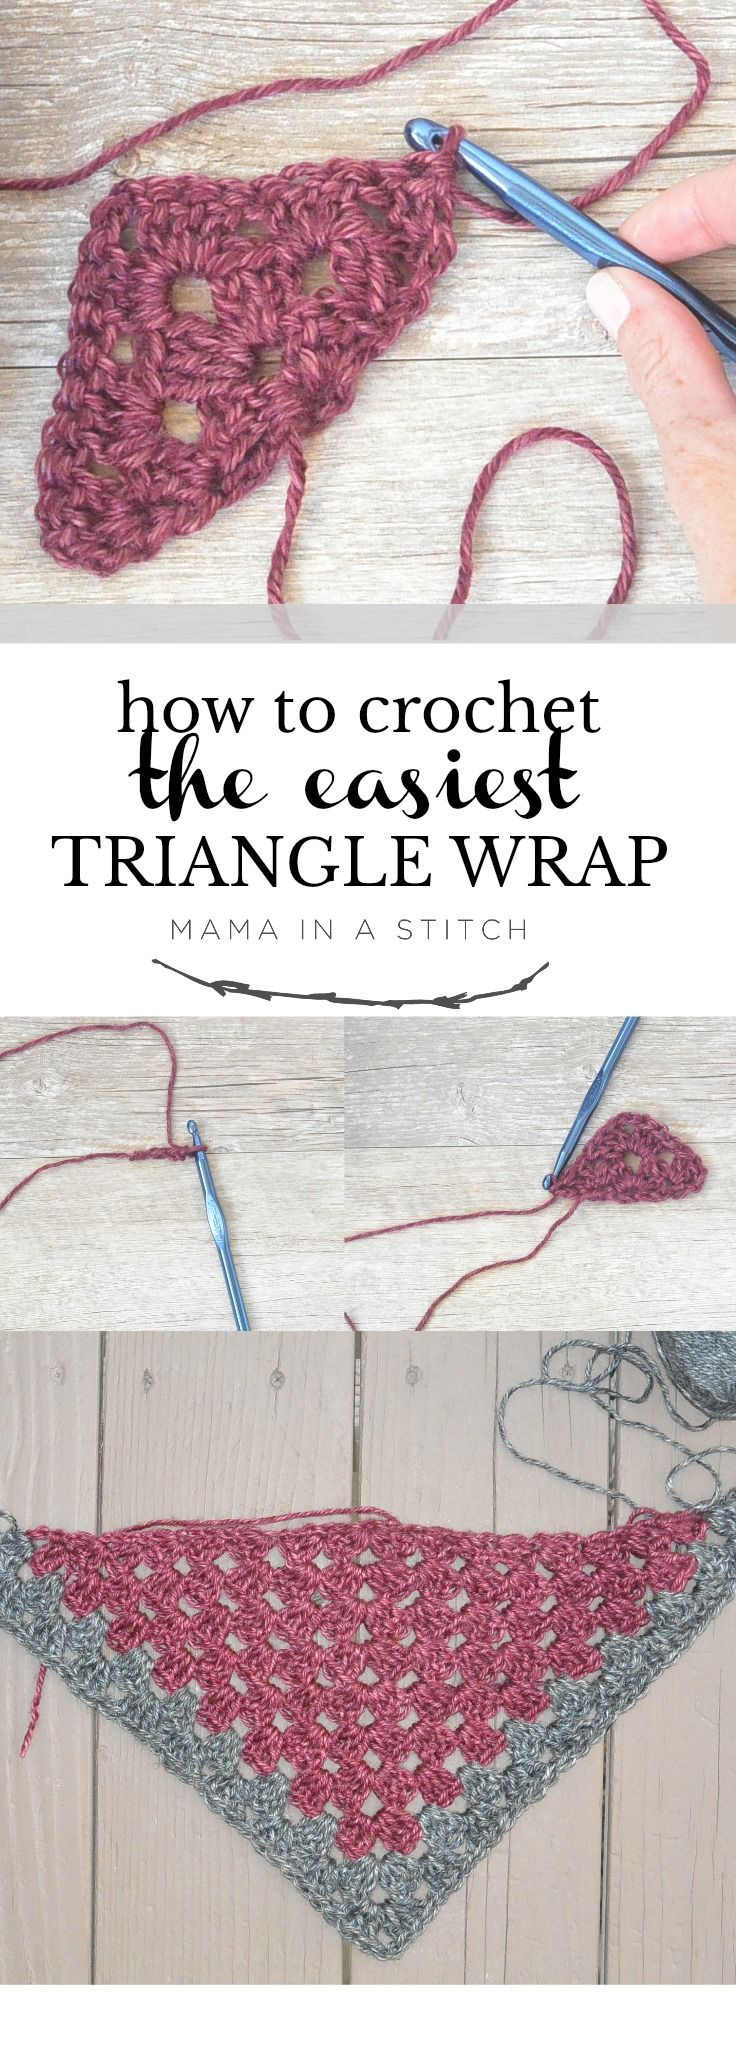 How To Crochet An Easy Granny Triangle via @MamaInAStitch This free tutorial and video shows you how to make a super easy granny triangle. You can make it as large or small as you'd like! #crafts #diy